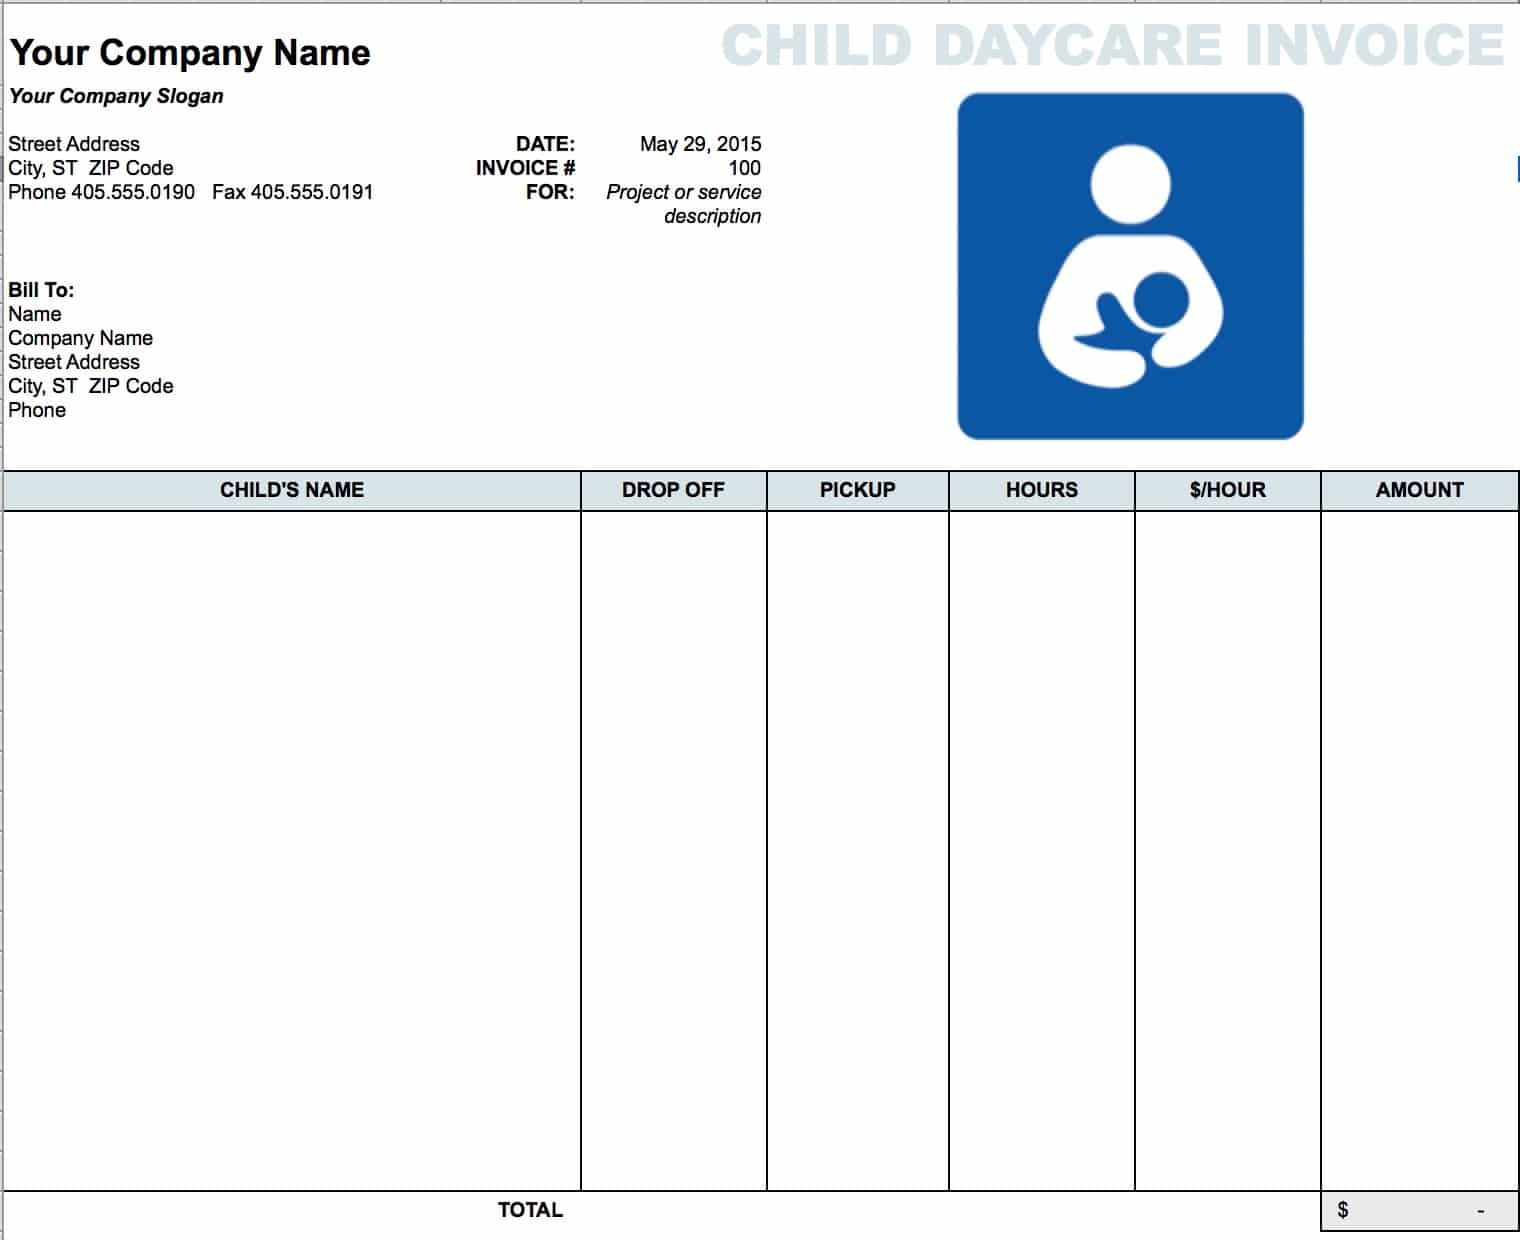 Free Daycare Child Invoice Template Excel PDF Word Doc - Invoice template for free